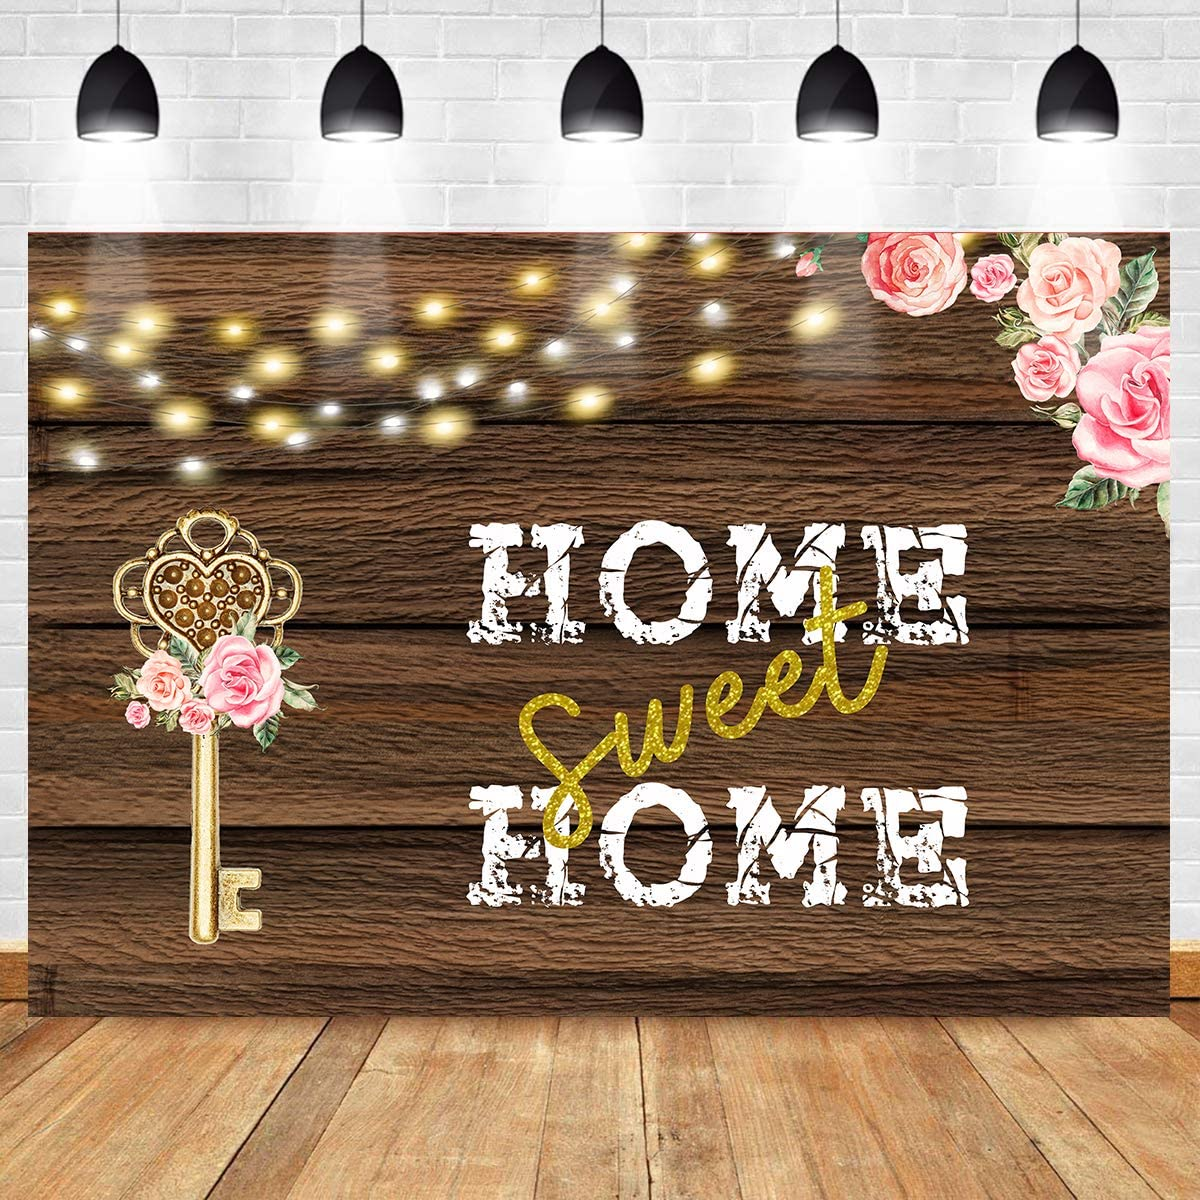 7x10 FT Home Sweet Home Vinyl Photography Backdrop,Housewarming Welcoming Theme Antique Frame with Flowers and Birds Background for Party Home Decor Outdoorsy Theme Shoot Props